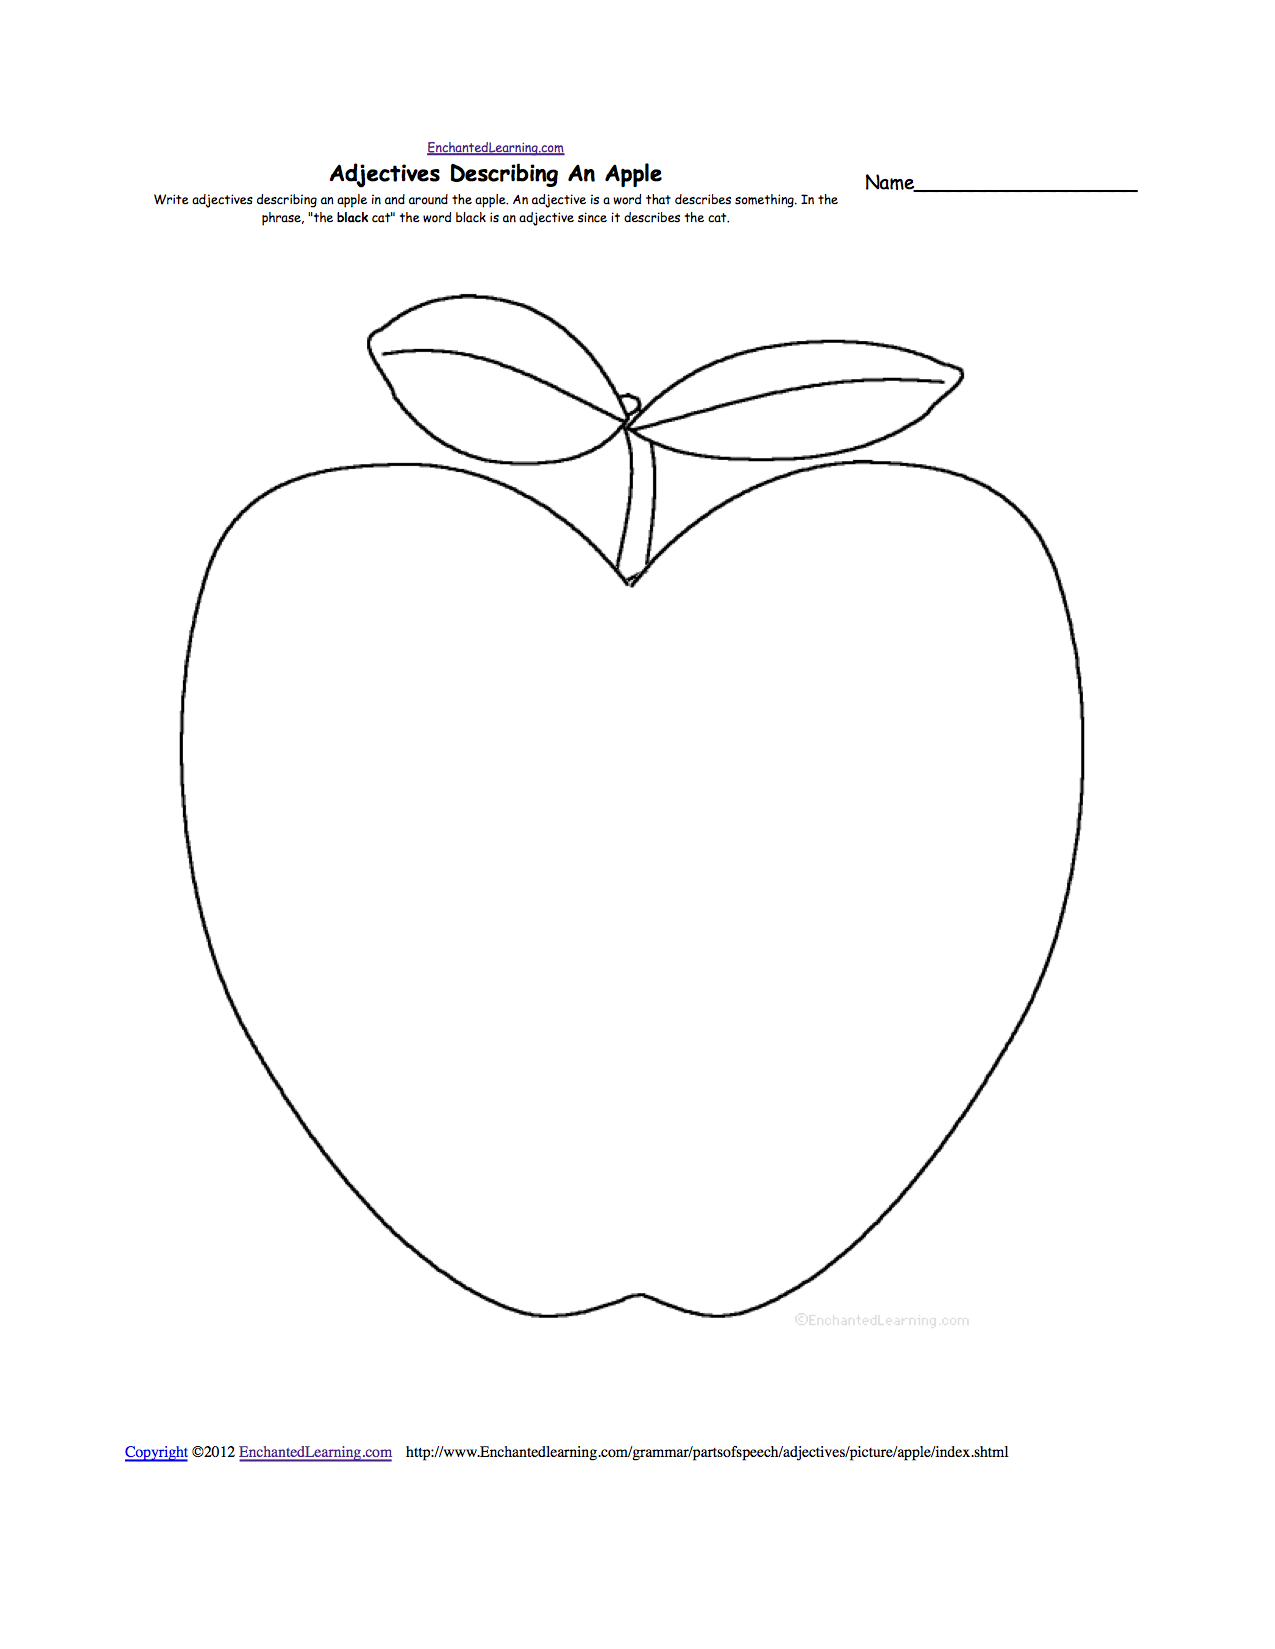 Apples At Enchantedlearning | A For Apple Worksheet Printable